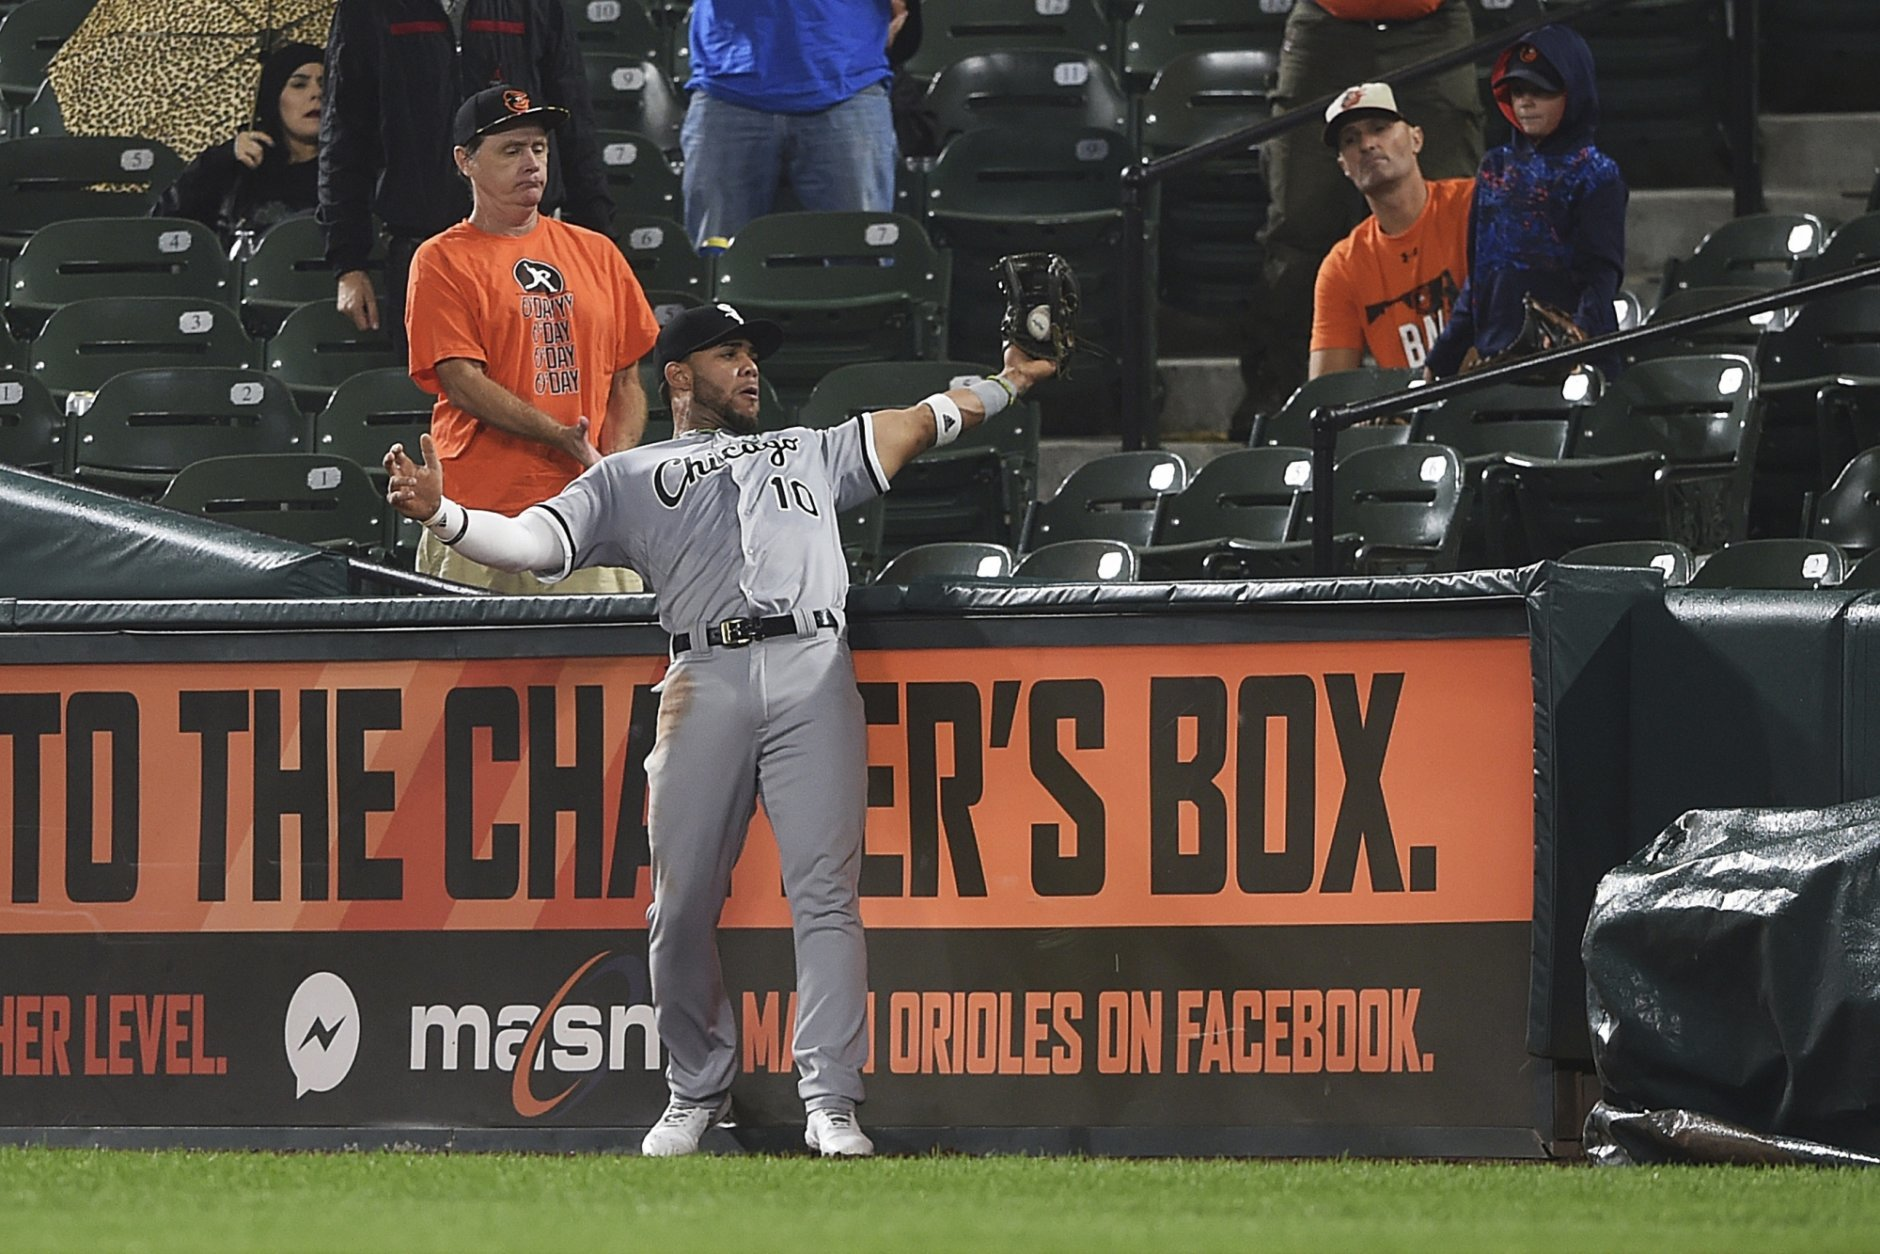 Chicago White Sox second baseman Yoan Moncada catches a ball in foul territory hit by Baltimore Orioles' DJ Stewart in the second inning of a baseball game, Friday, Sept. 14, 2018, in Baltimore. (AP Photo/Gail Burton)